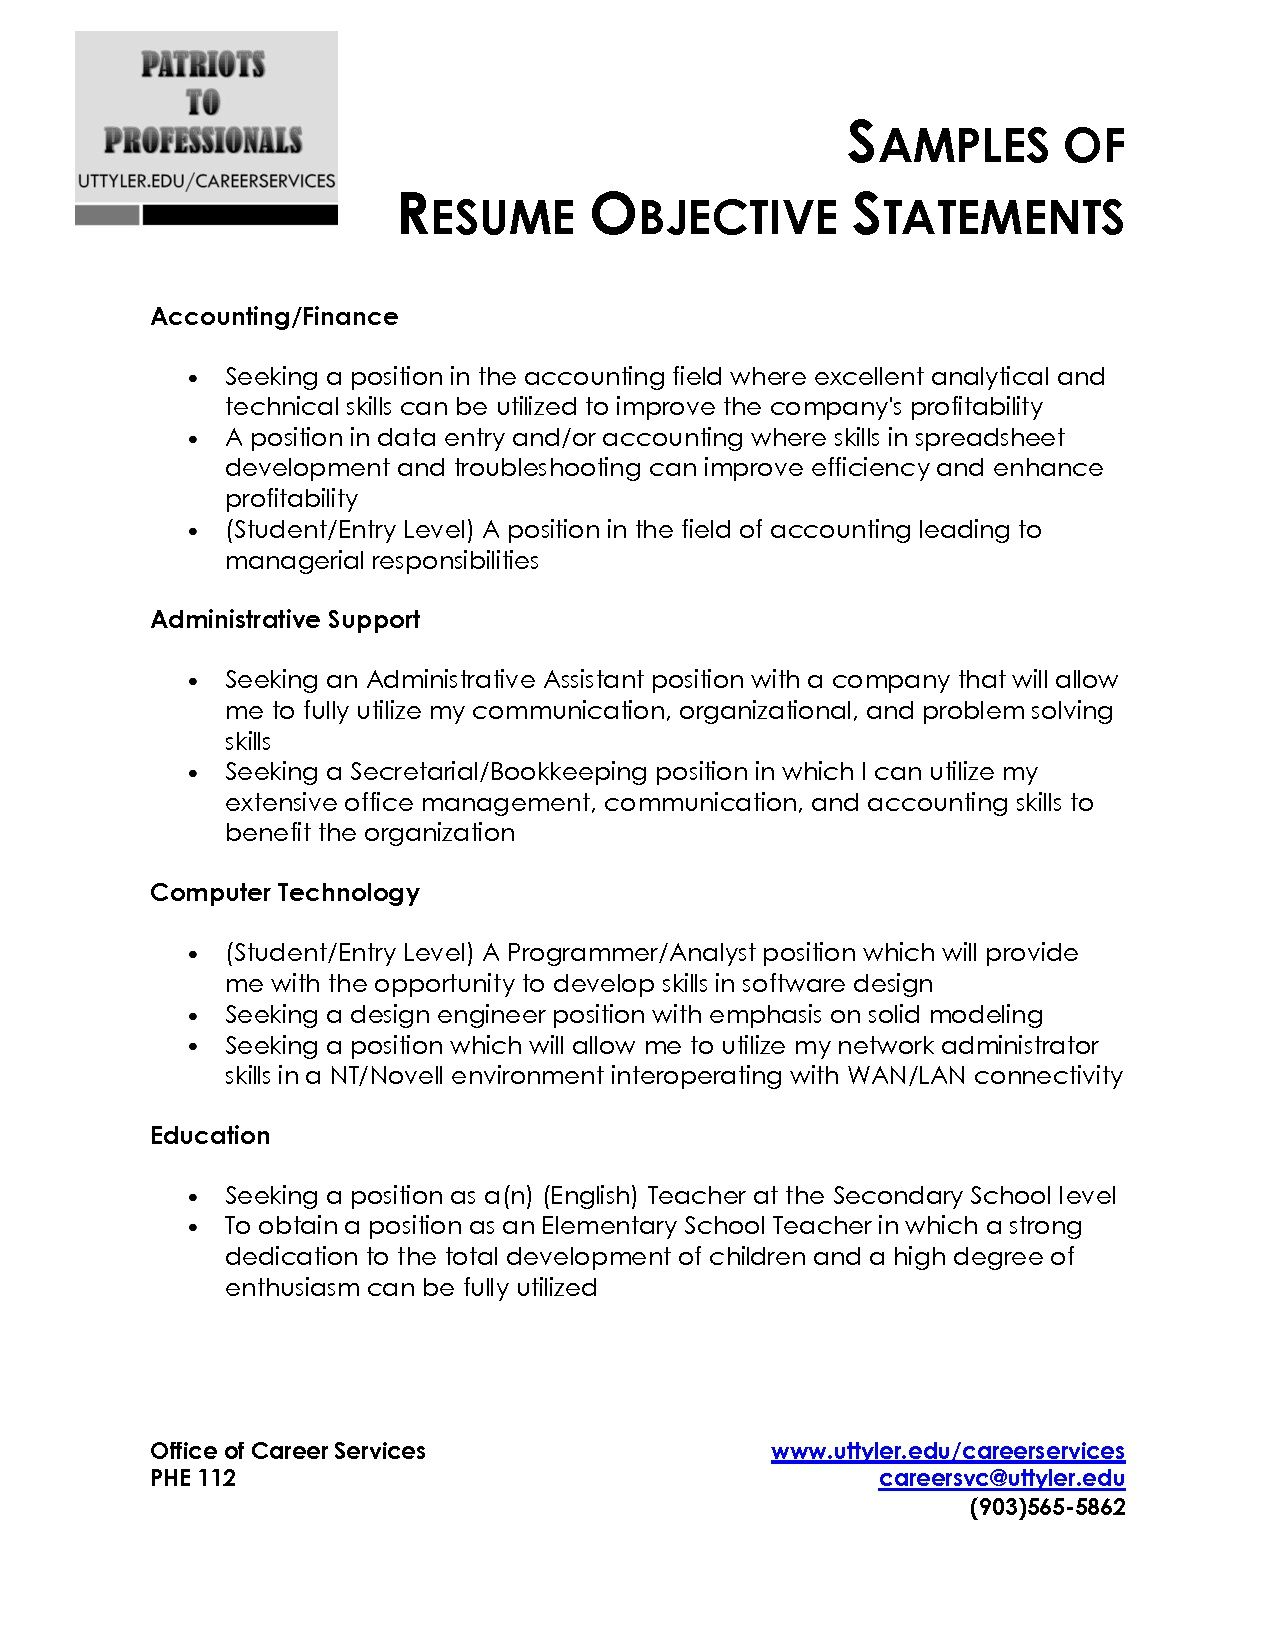 sample resume objective statement free templates examples strong samples director of Resume Strong Resume Objective Samples